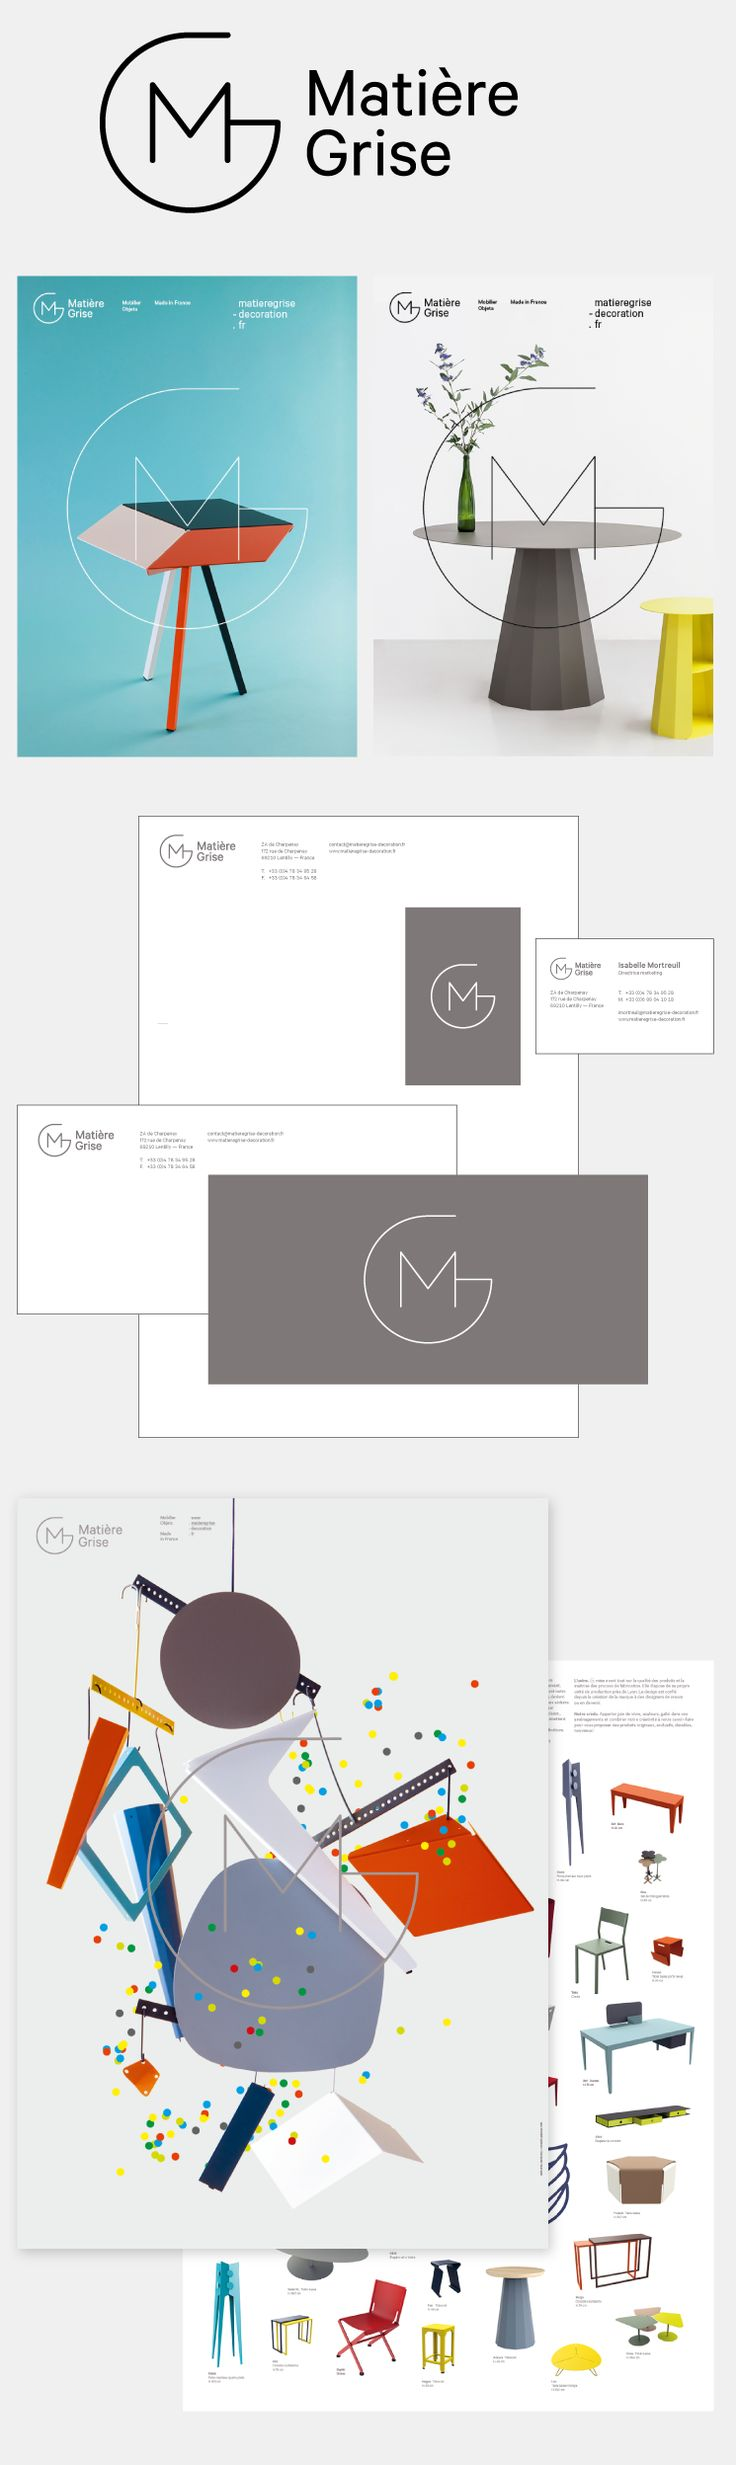 Ogo Wiring Diagram 96 Best Images On Pinterest Corporate Identity Graph Trafik Design Graphique Sites Multimdia Espace Installation